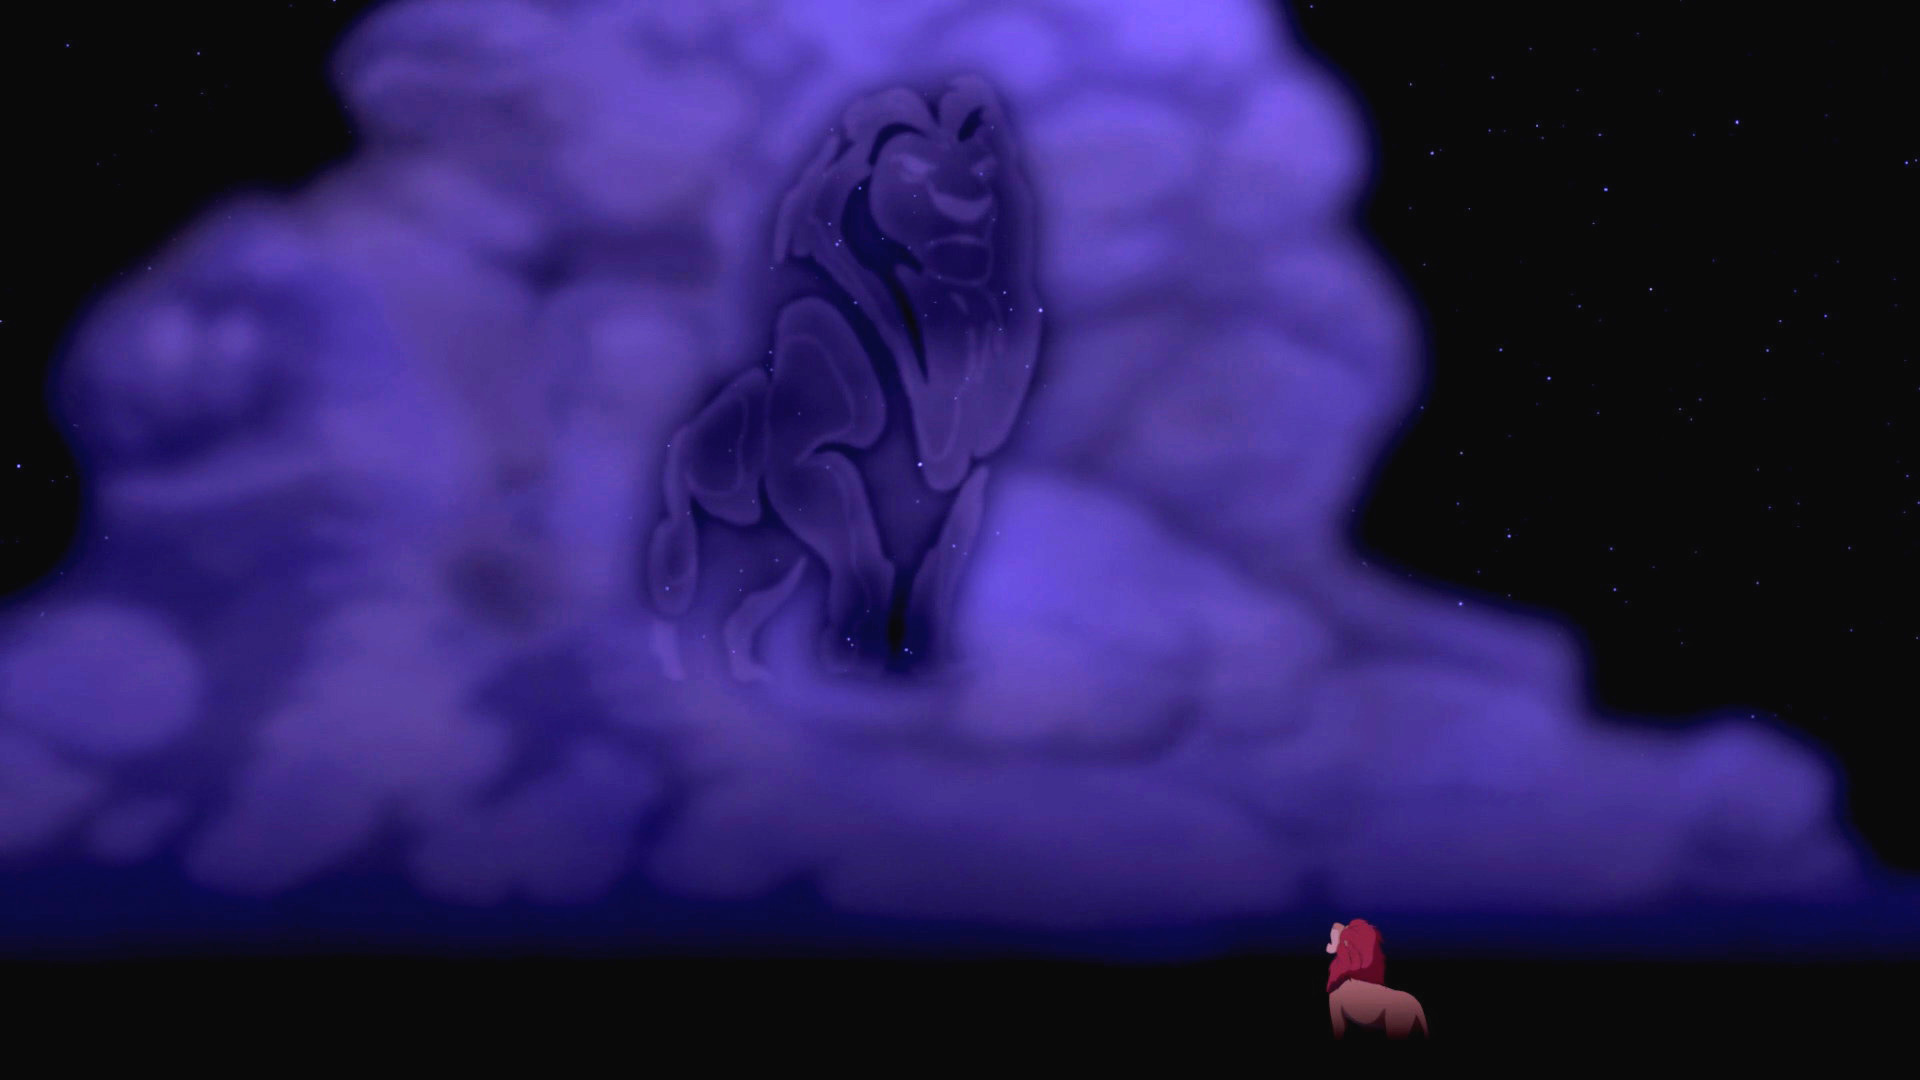 """""""Look inside yourself Simba. You are more than what you have become."""""""